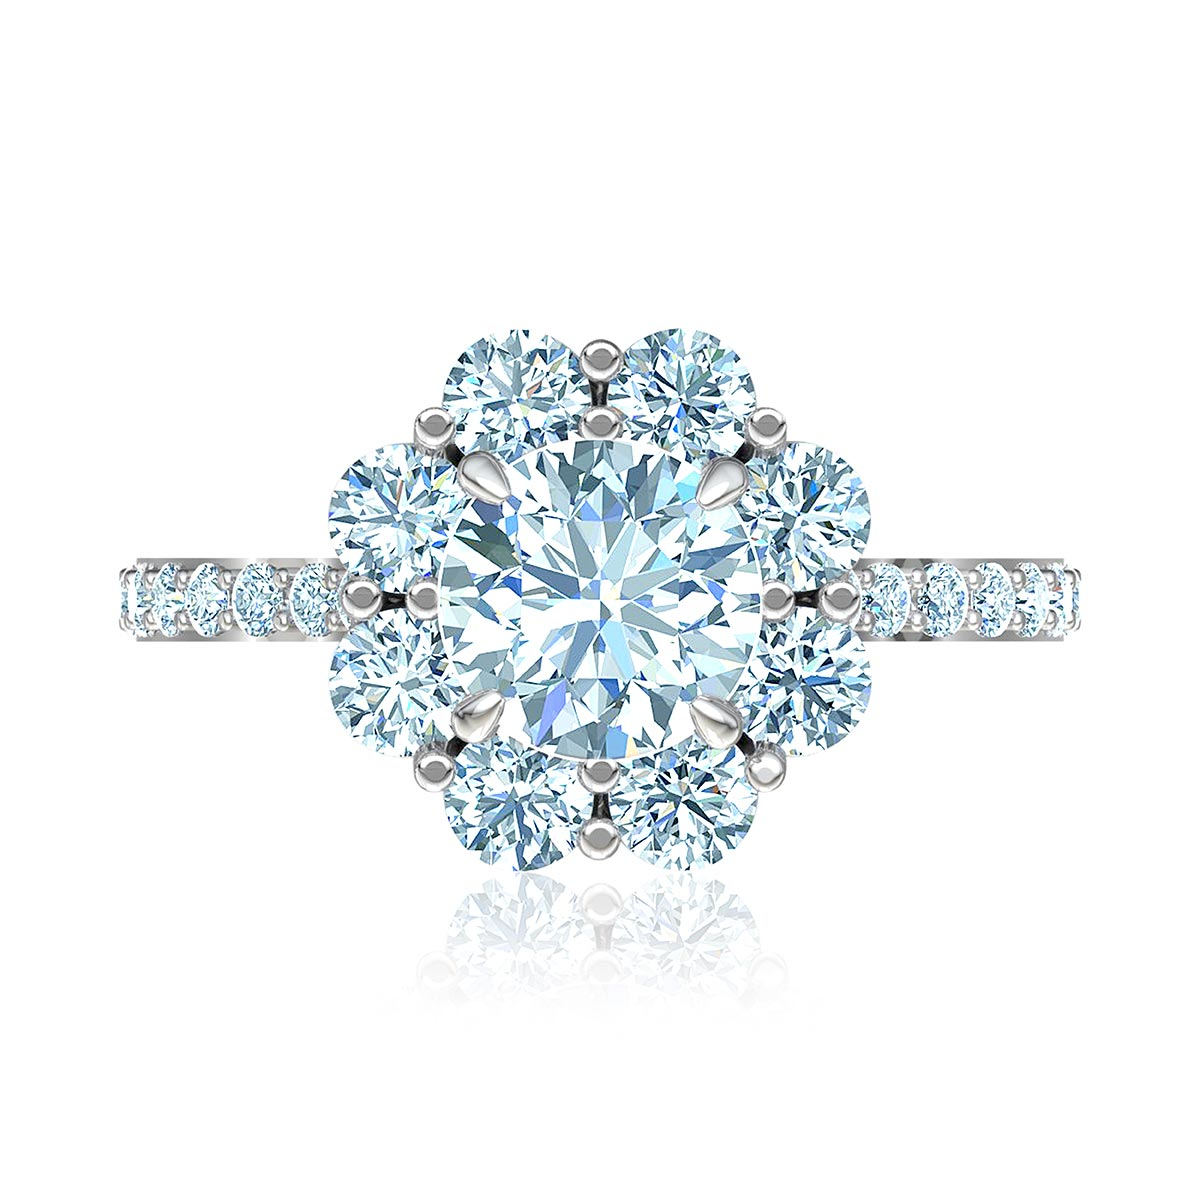 Portofino Halo Diamond Ring